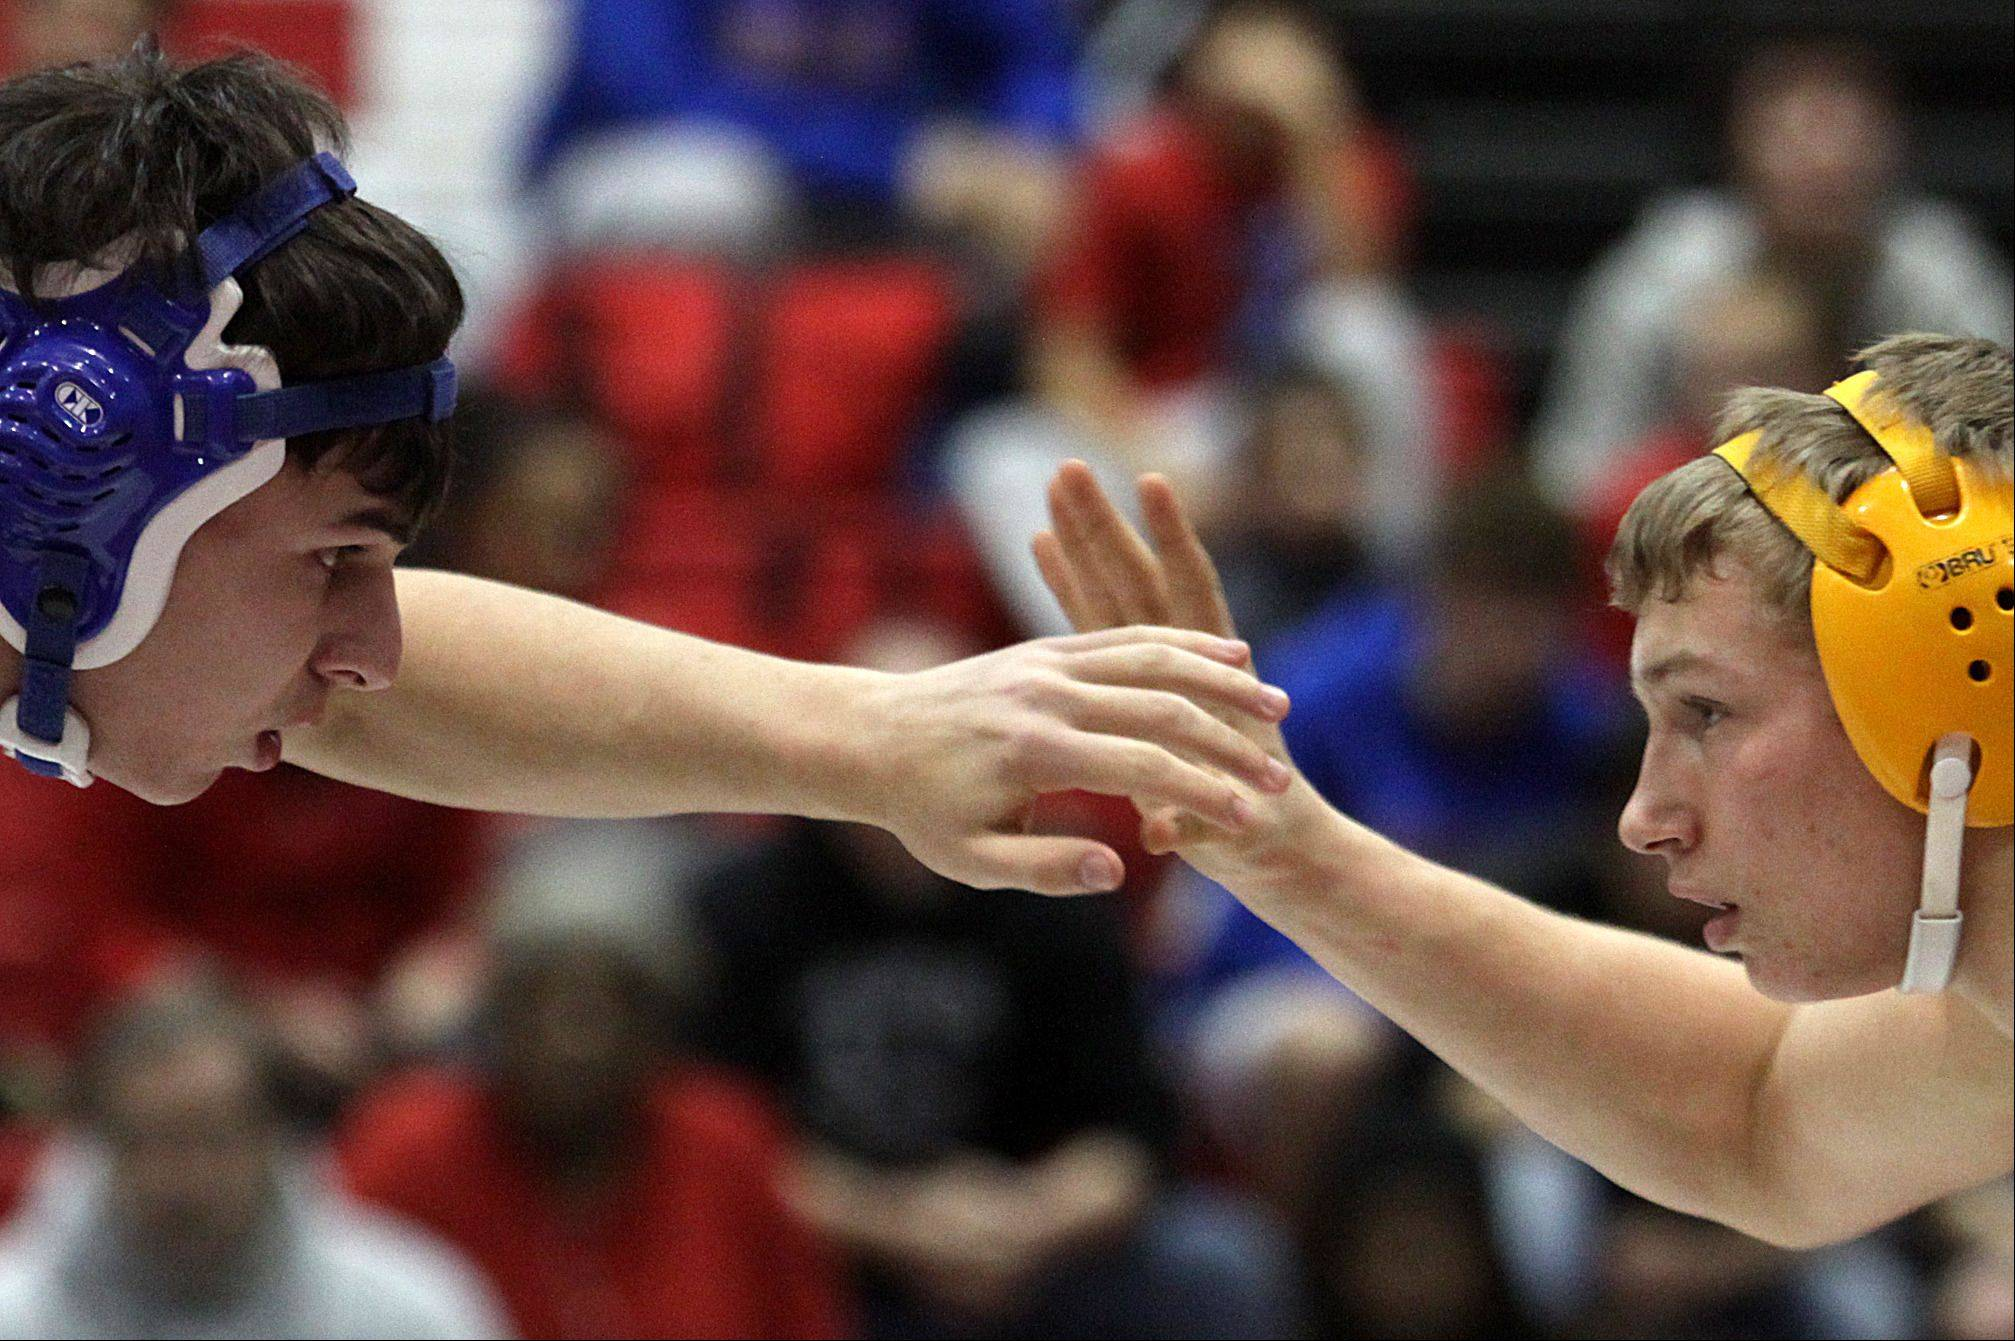 Jacobs' David Haire, right, and Dundee-Crown's Claud Bird look to strike during their 152-pound match at Carpentersville on Thursday night.